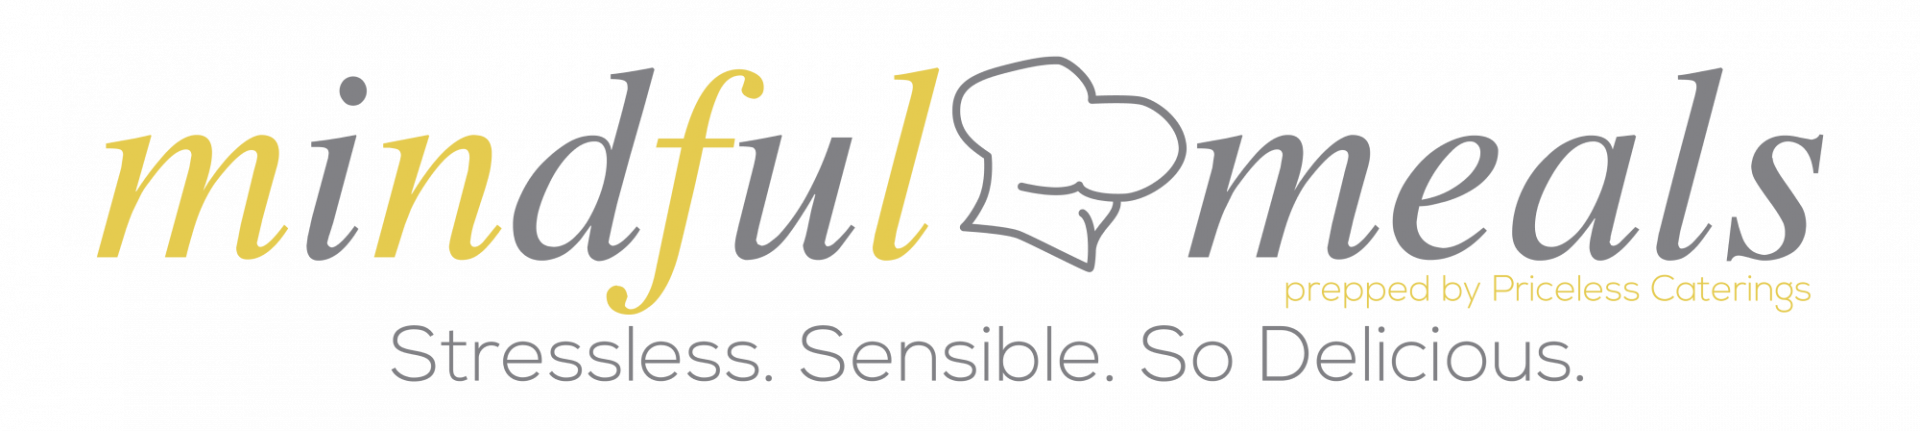 Mindful Meals logo